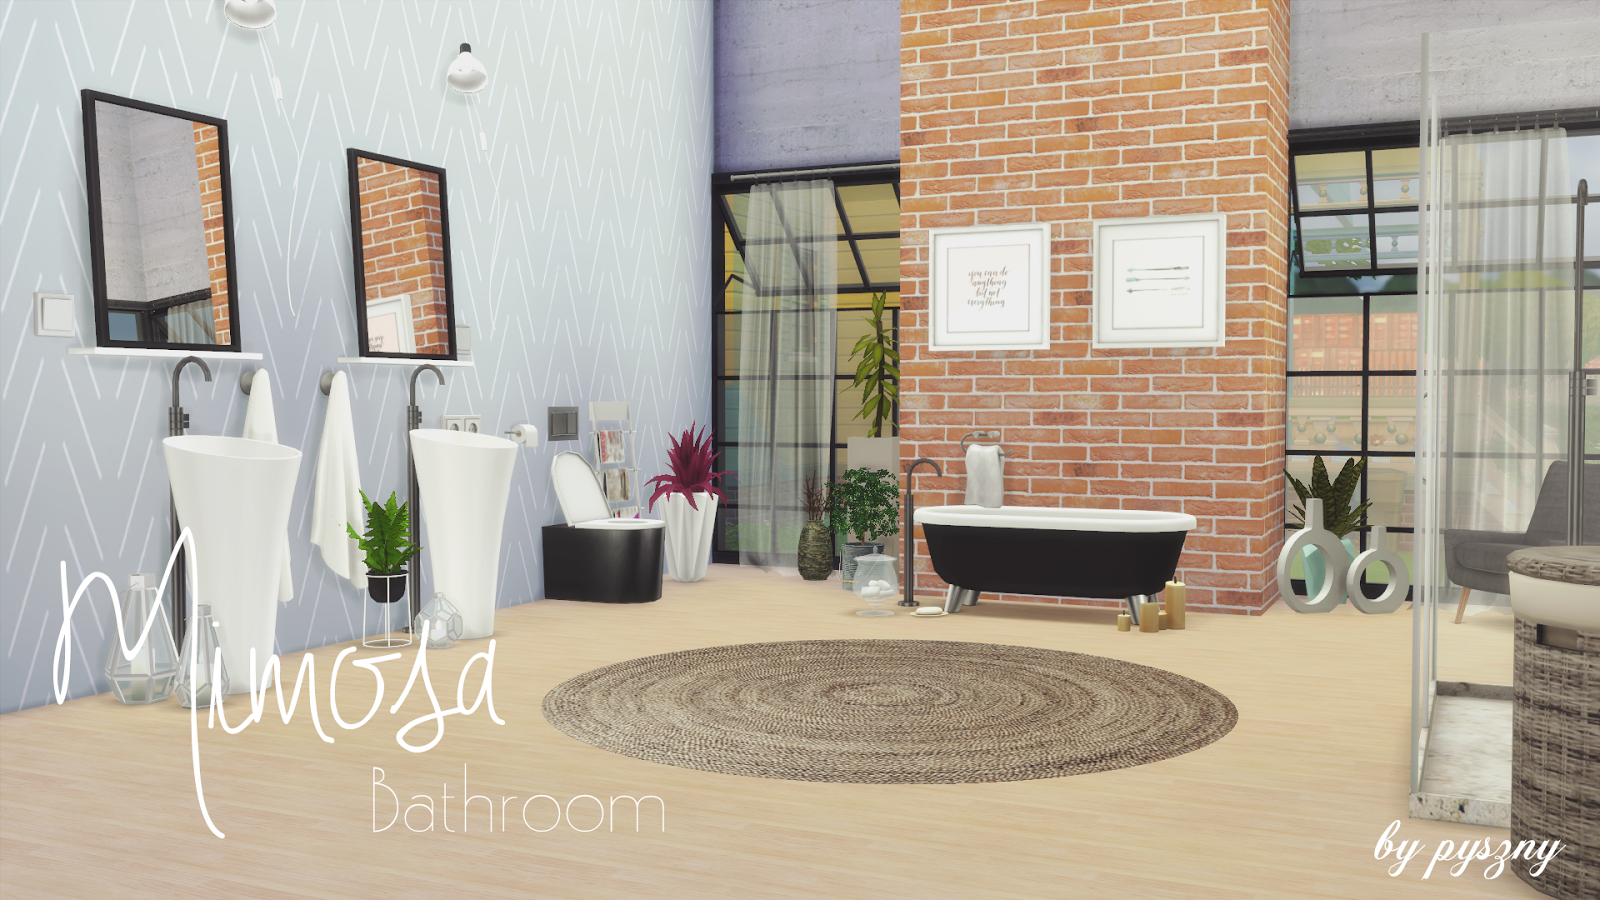 sims 4 cc's - the best: mimosa bathroom set by pyszny, Badezimmer ideen